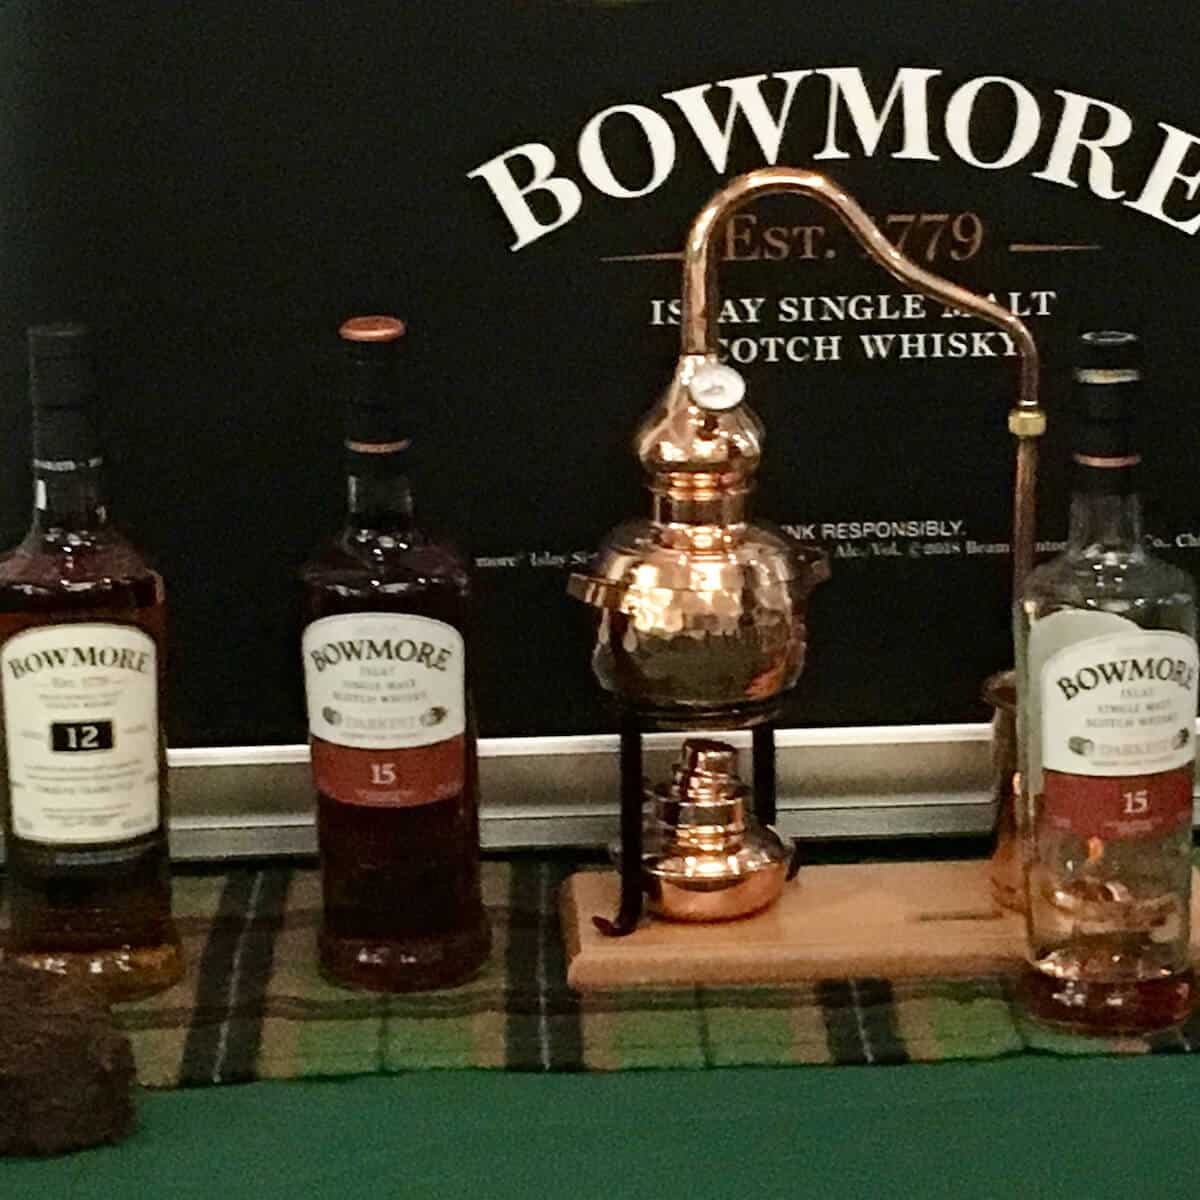 Bowmore lineup in bottles with model of a pot still.